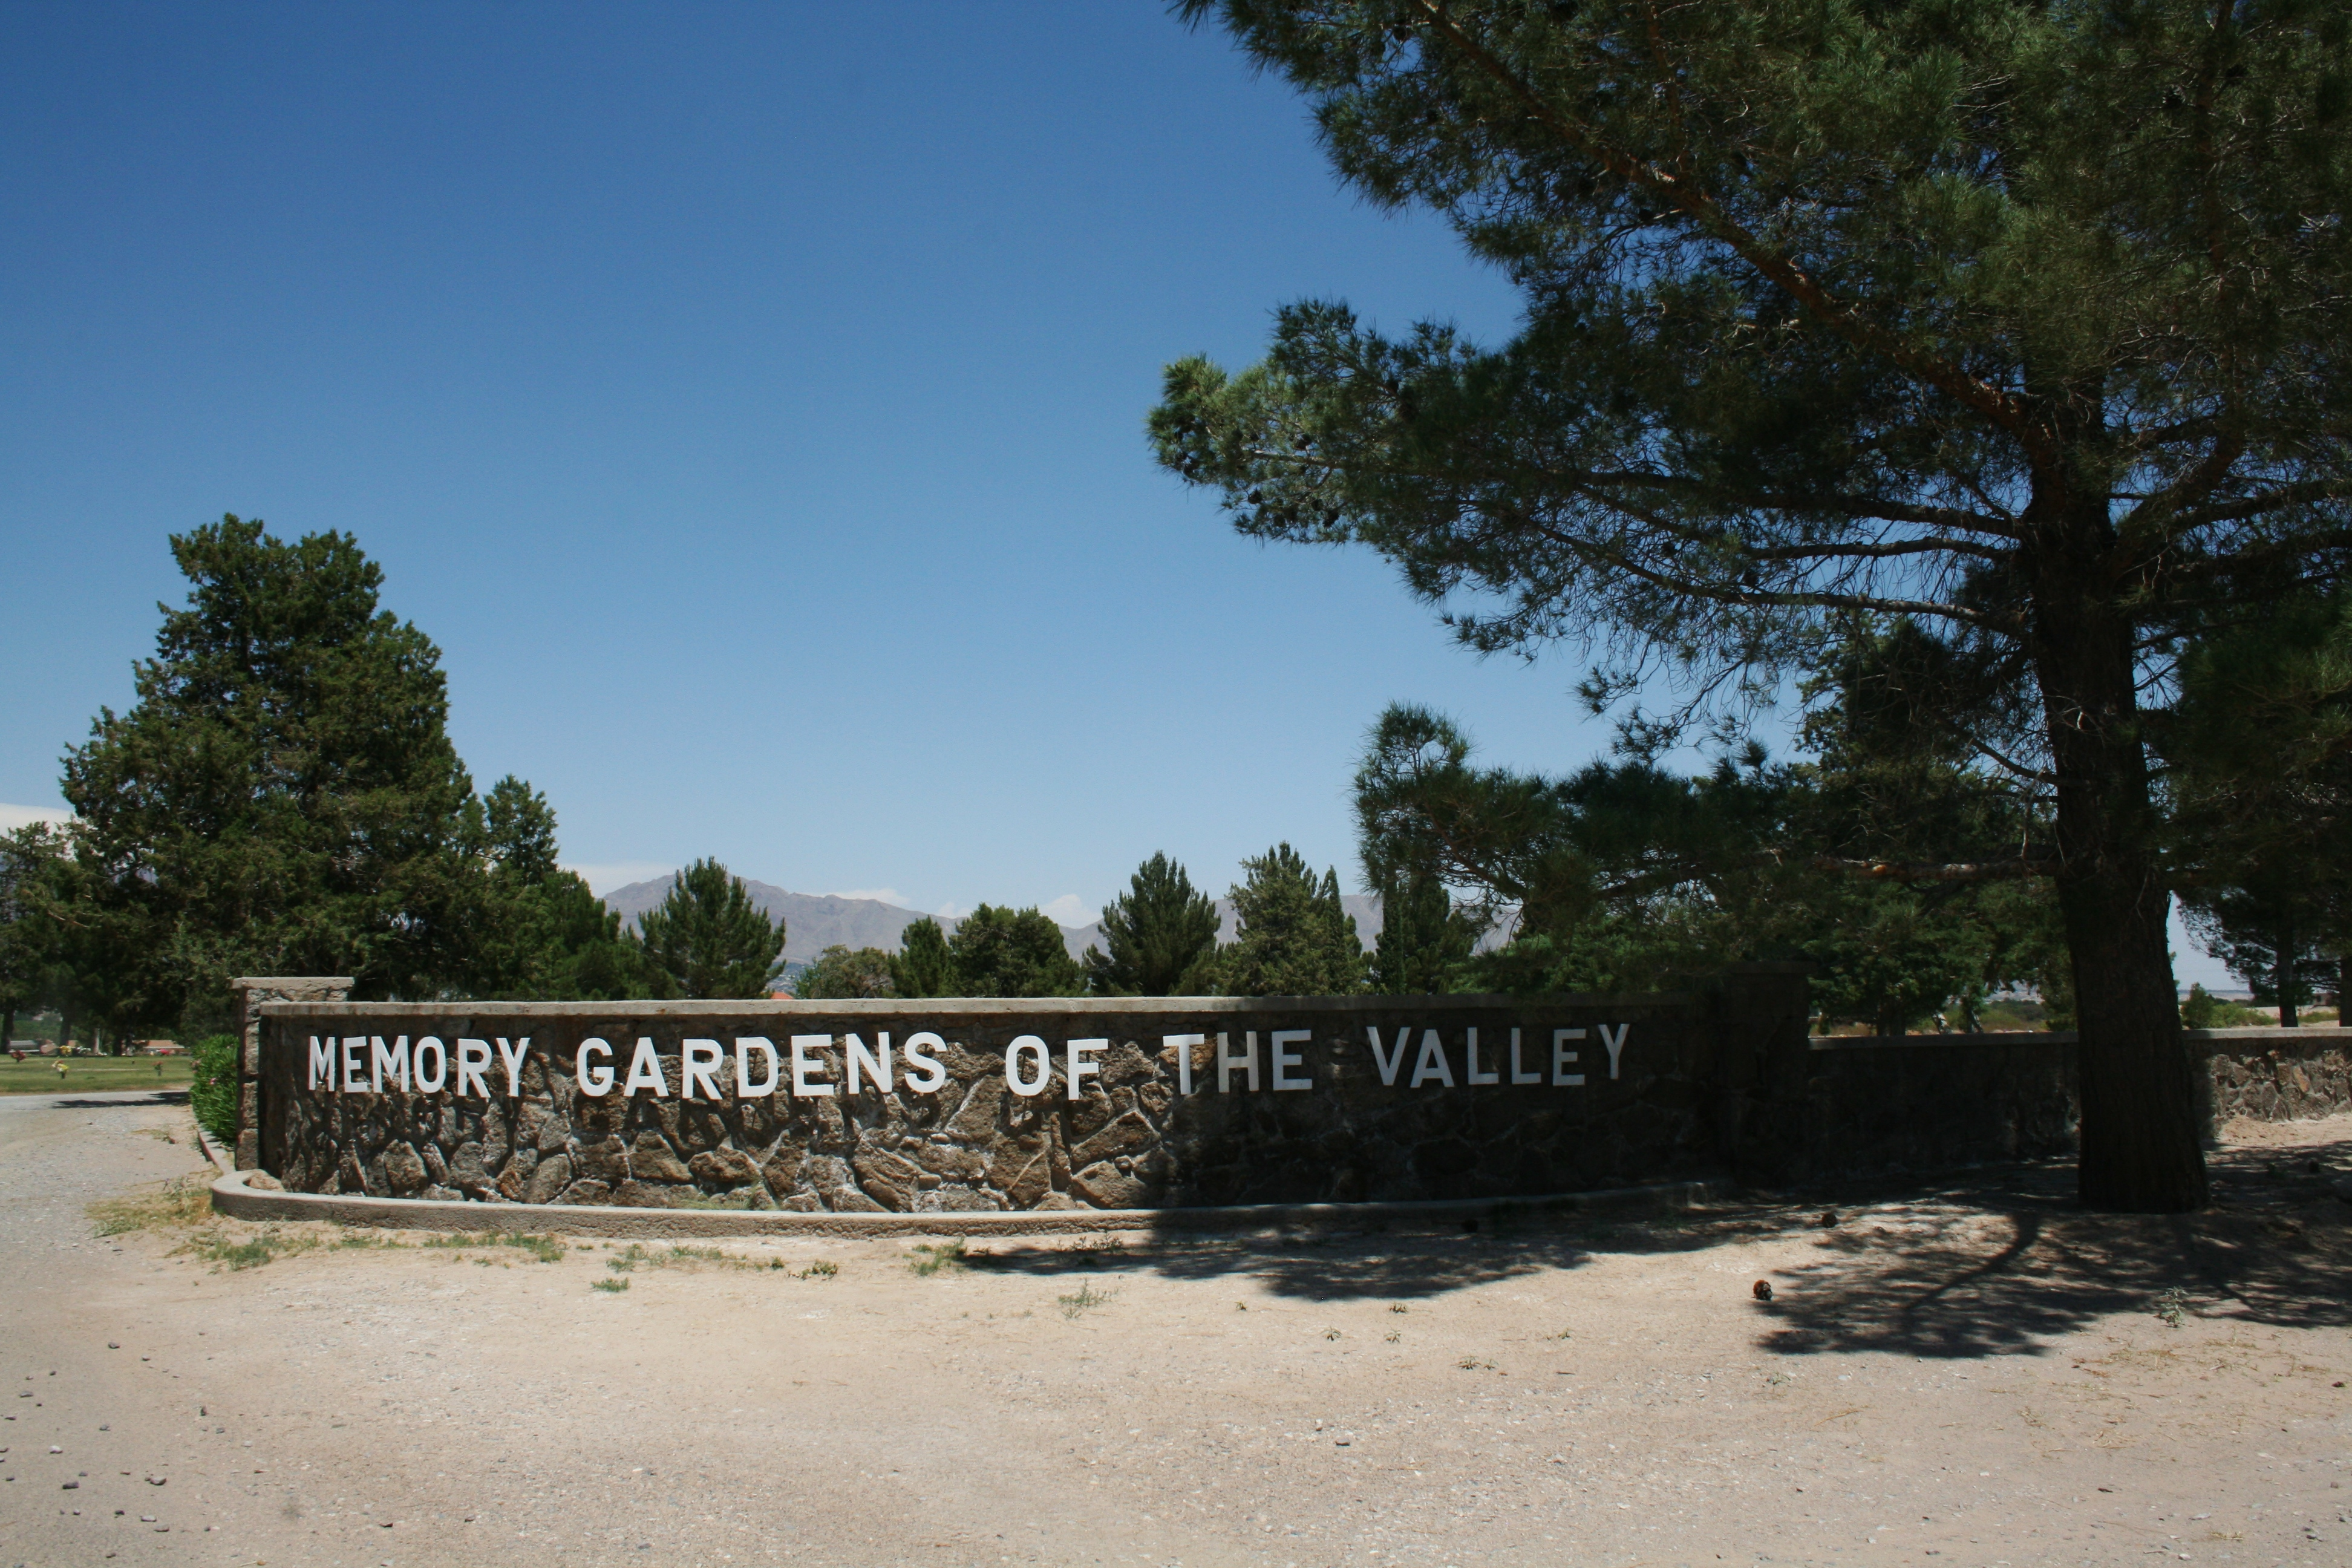 Memory Gardens of the Valley